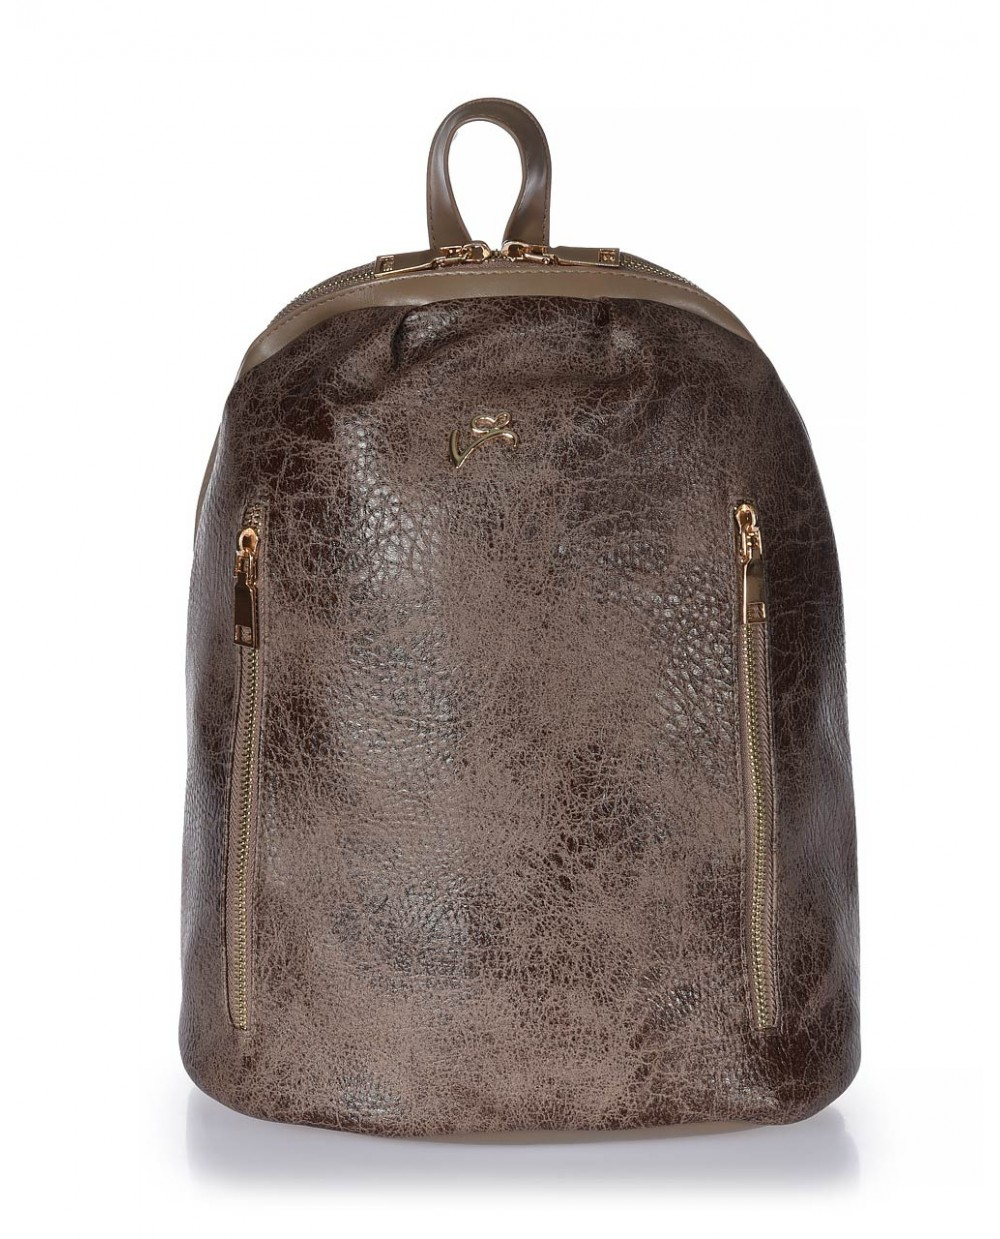 BACKPACK 5006